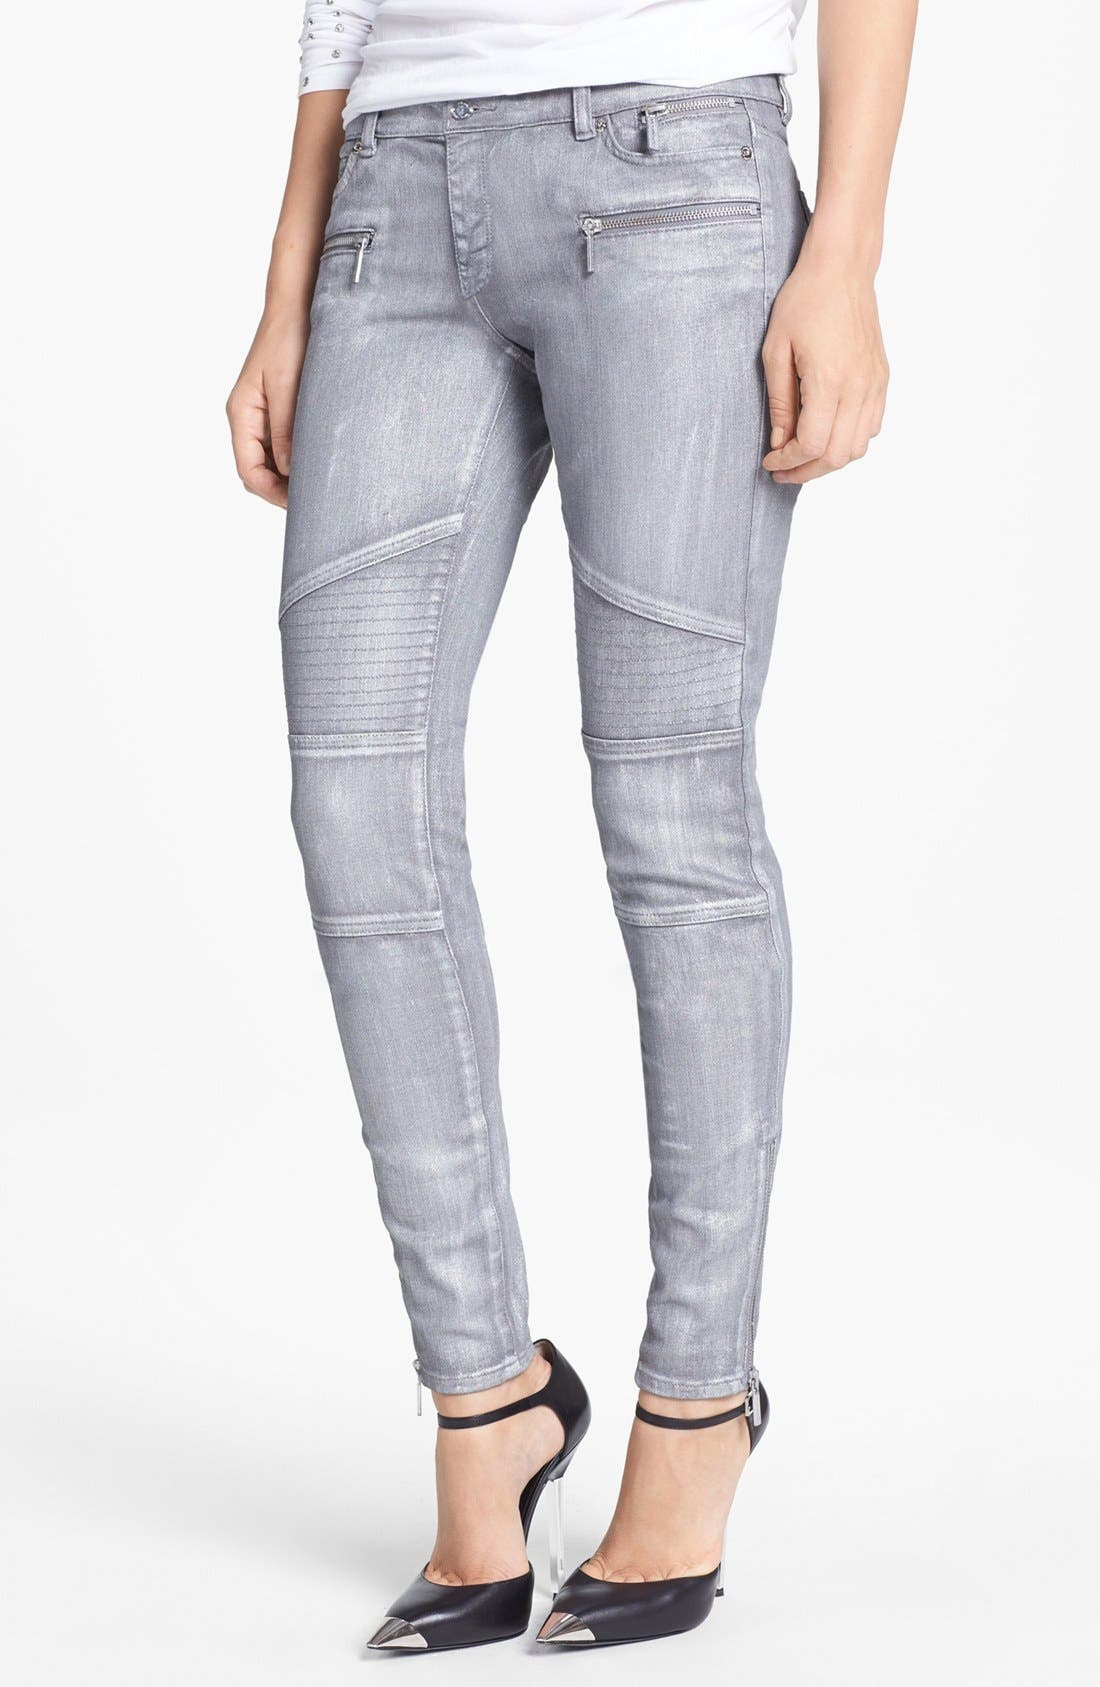 Alternate Image 1 Selected - MICHAEL Michael Jeans Moto Skinny Jeans (Silver)